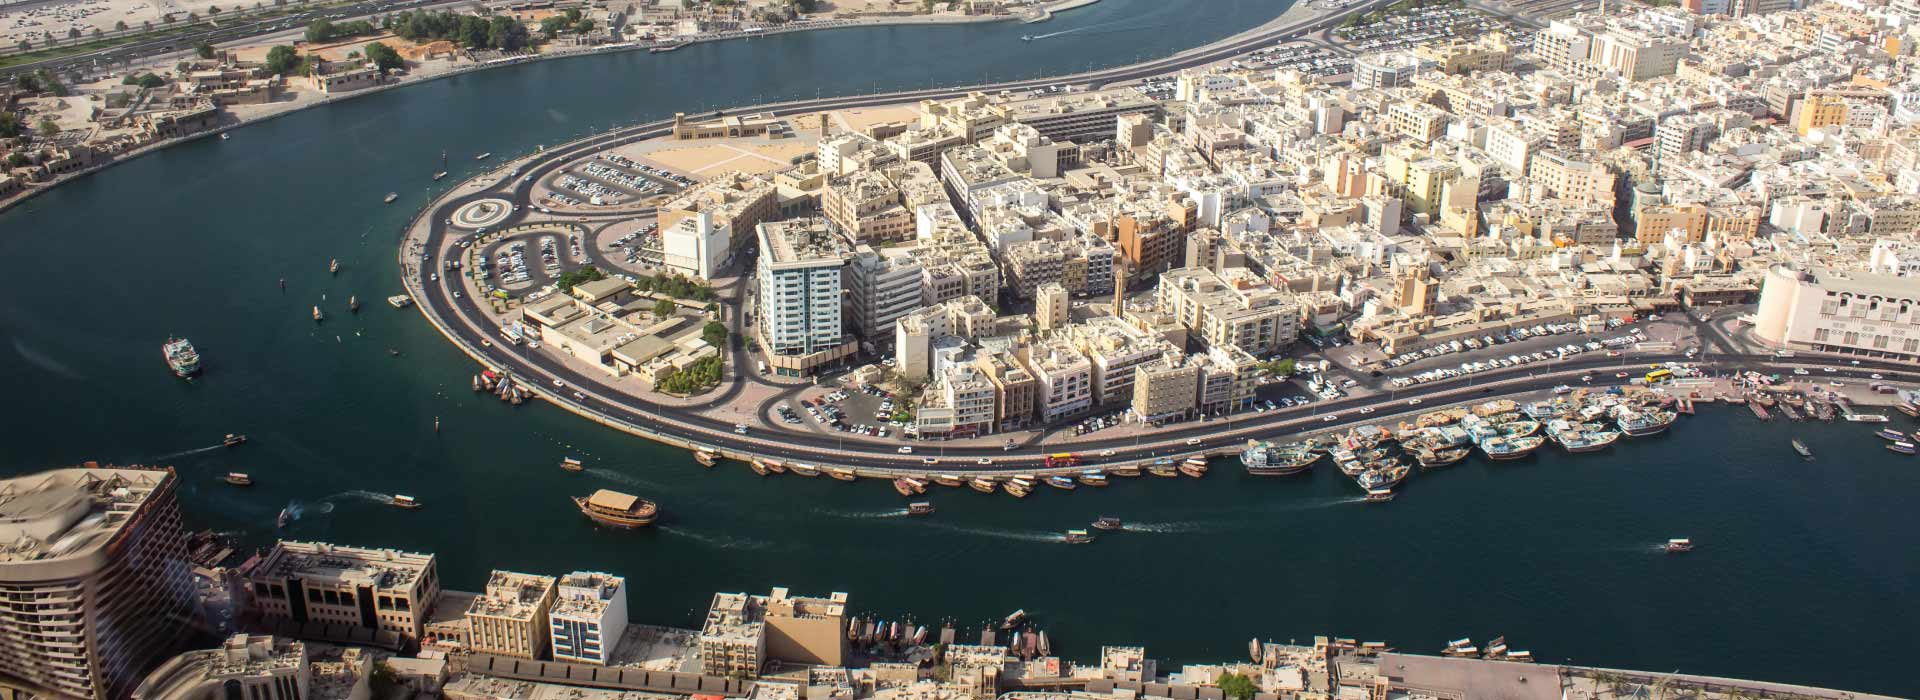 Helicopter tour is among things to do in Deira Dubai